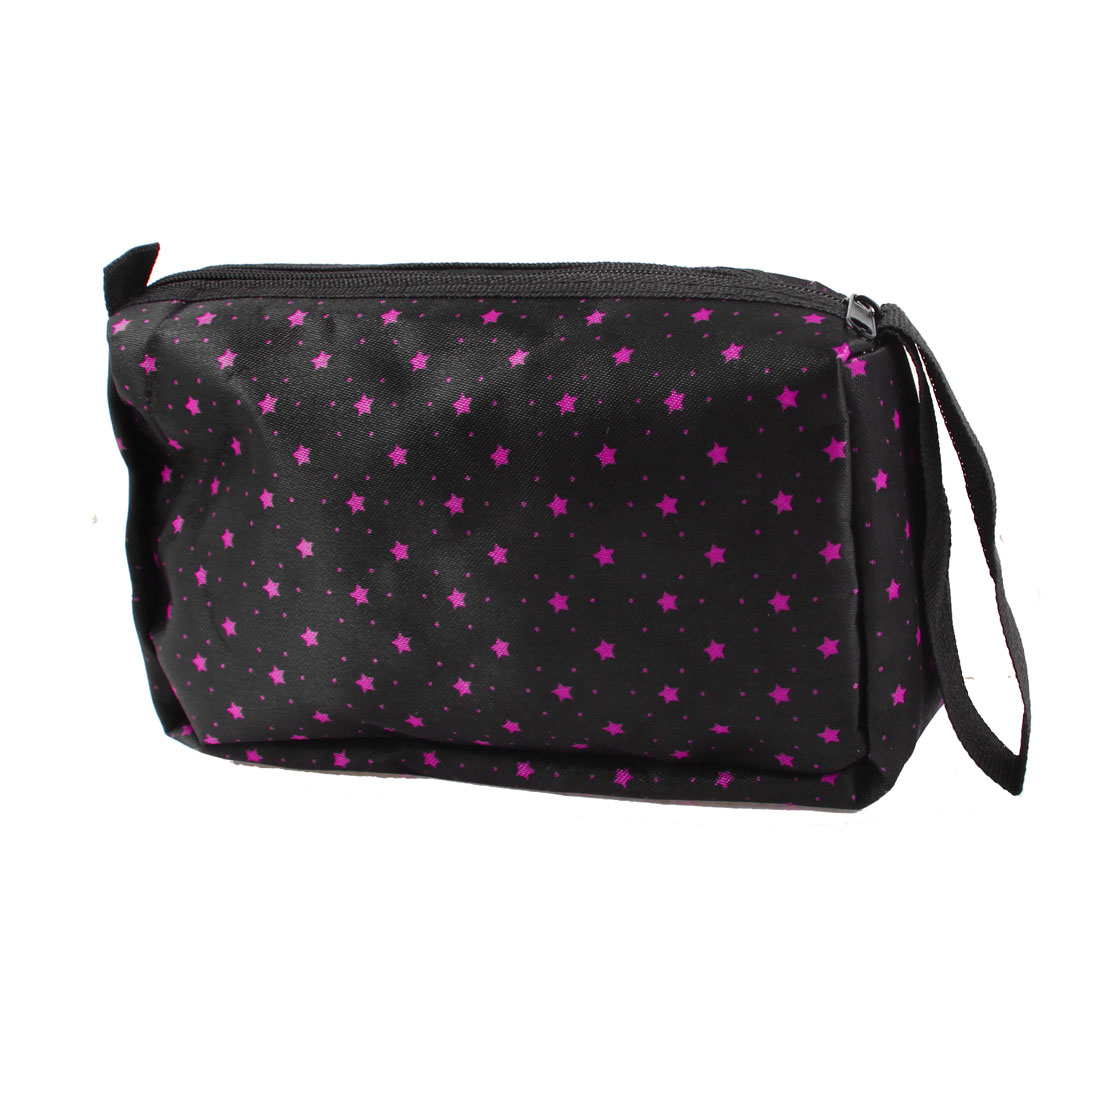 Rectangle Fuchsia Star Dot Prints Zip Up Cosmetic Pouch Bag Black for Lady